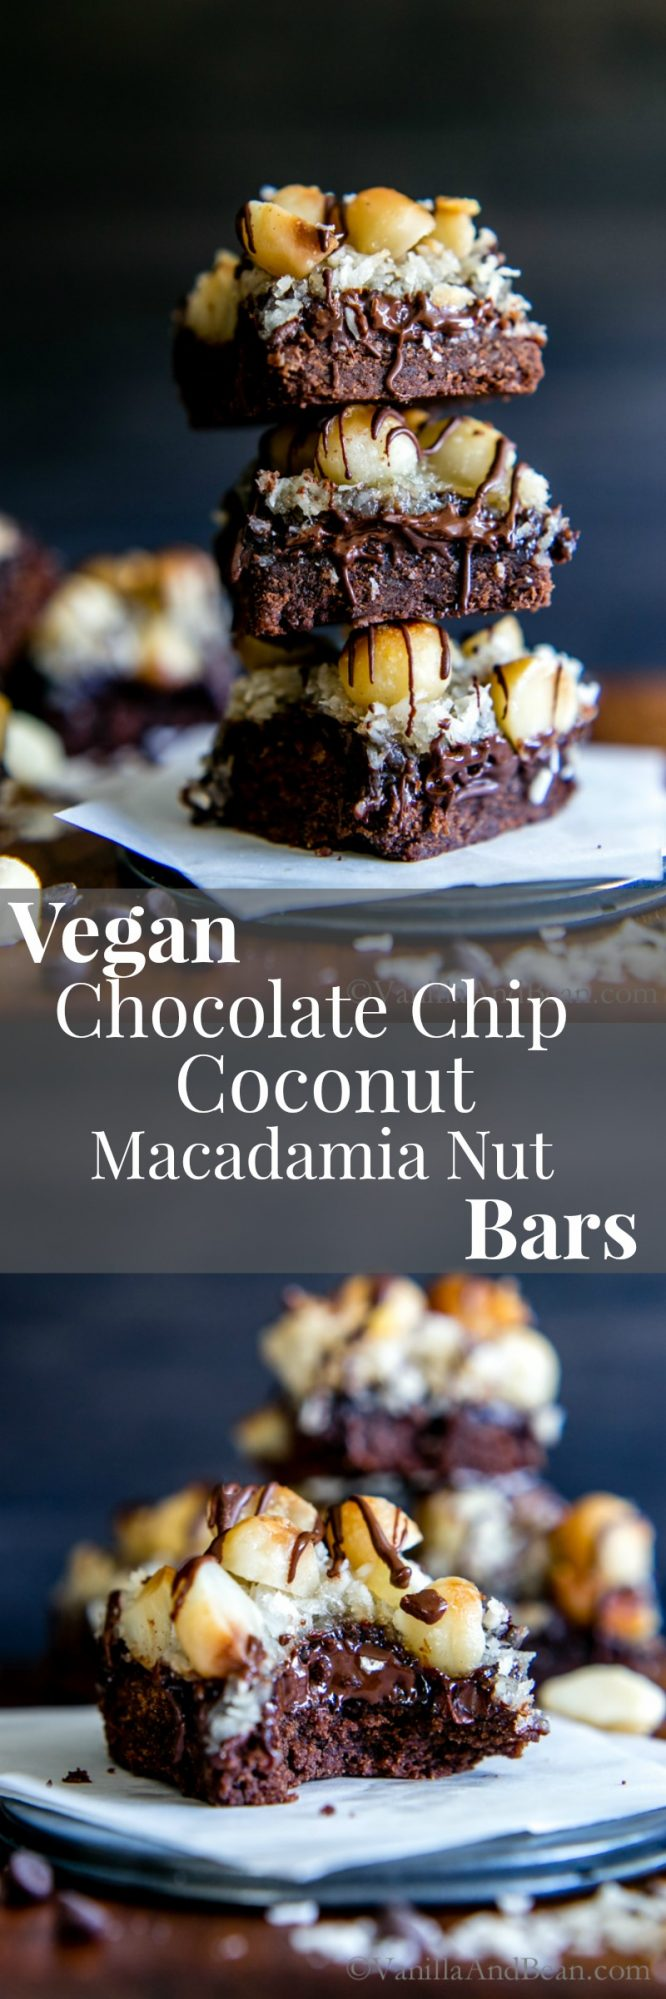 Chocolate cookie base topped with chocolate chips, coconut, macadamia nuts and coated in sweetened condensed coconut milk. Vegan Chocolate Chip Coconut Macadamia Nut Bars are melt in your mouth heaven.